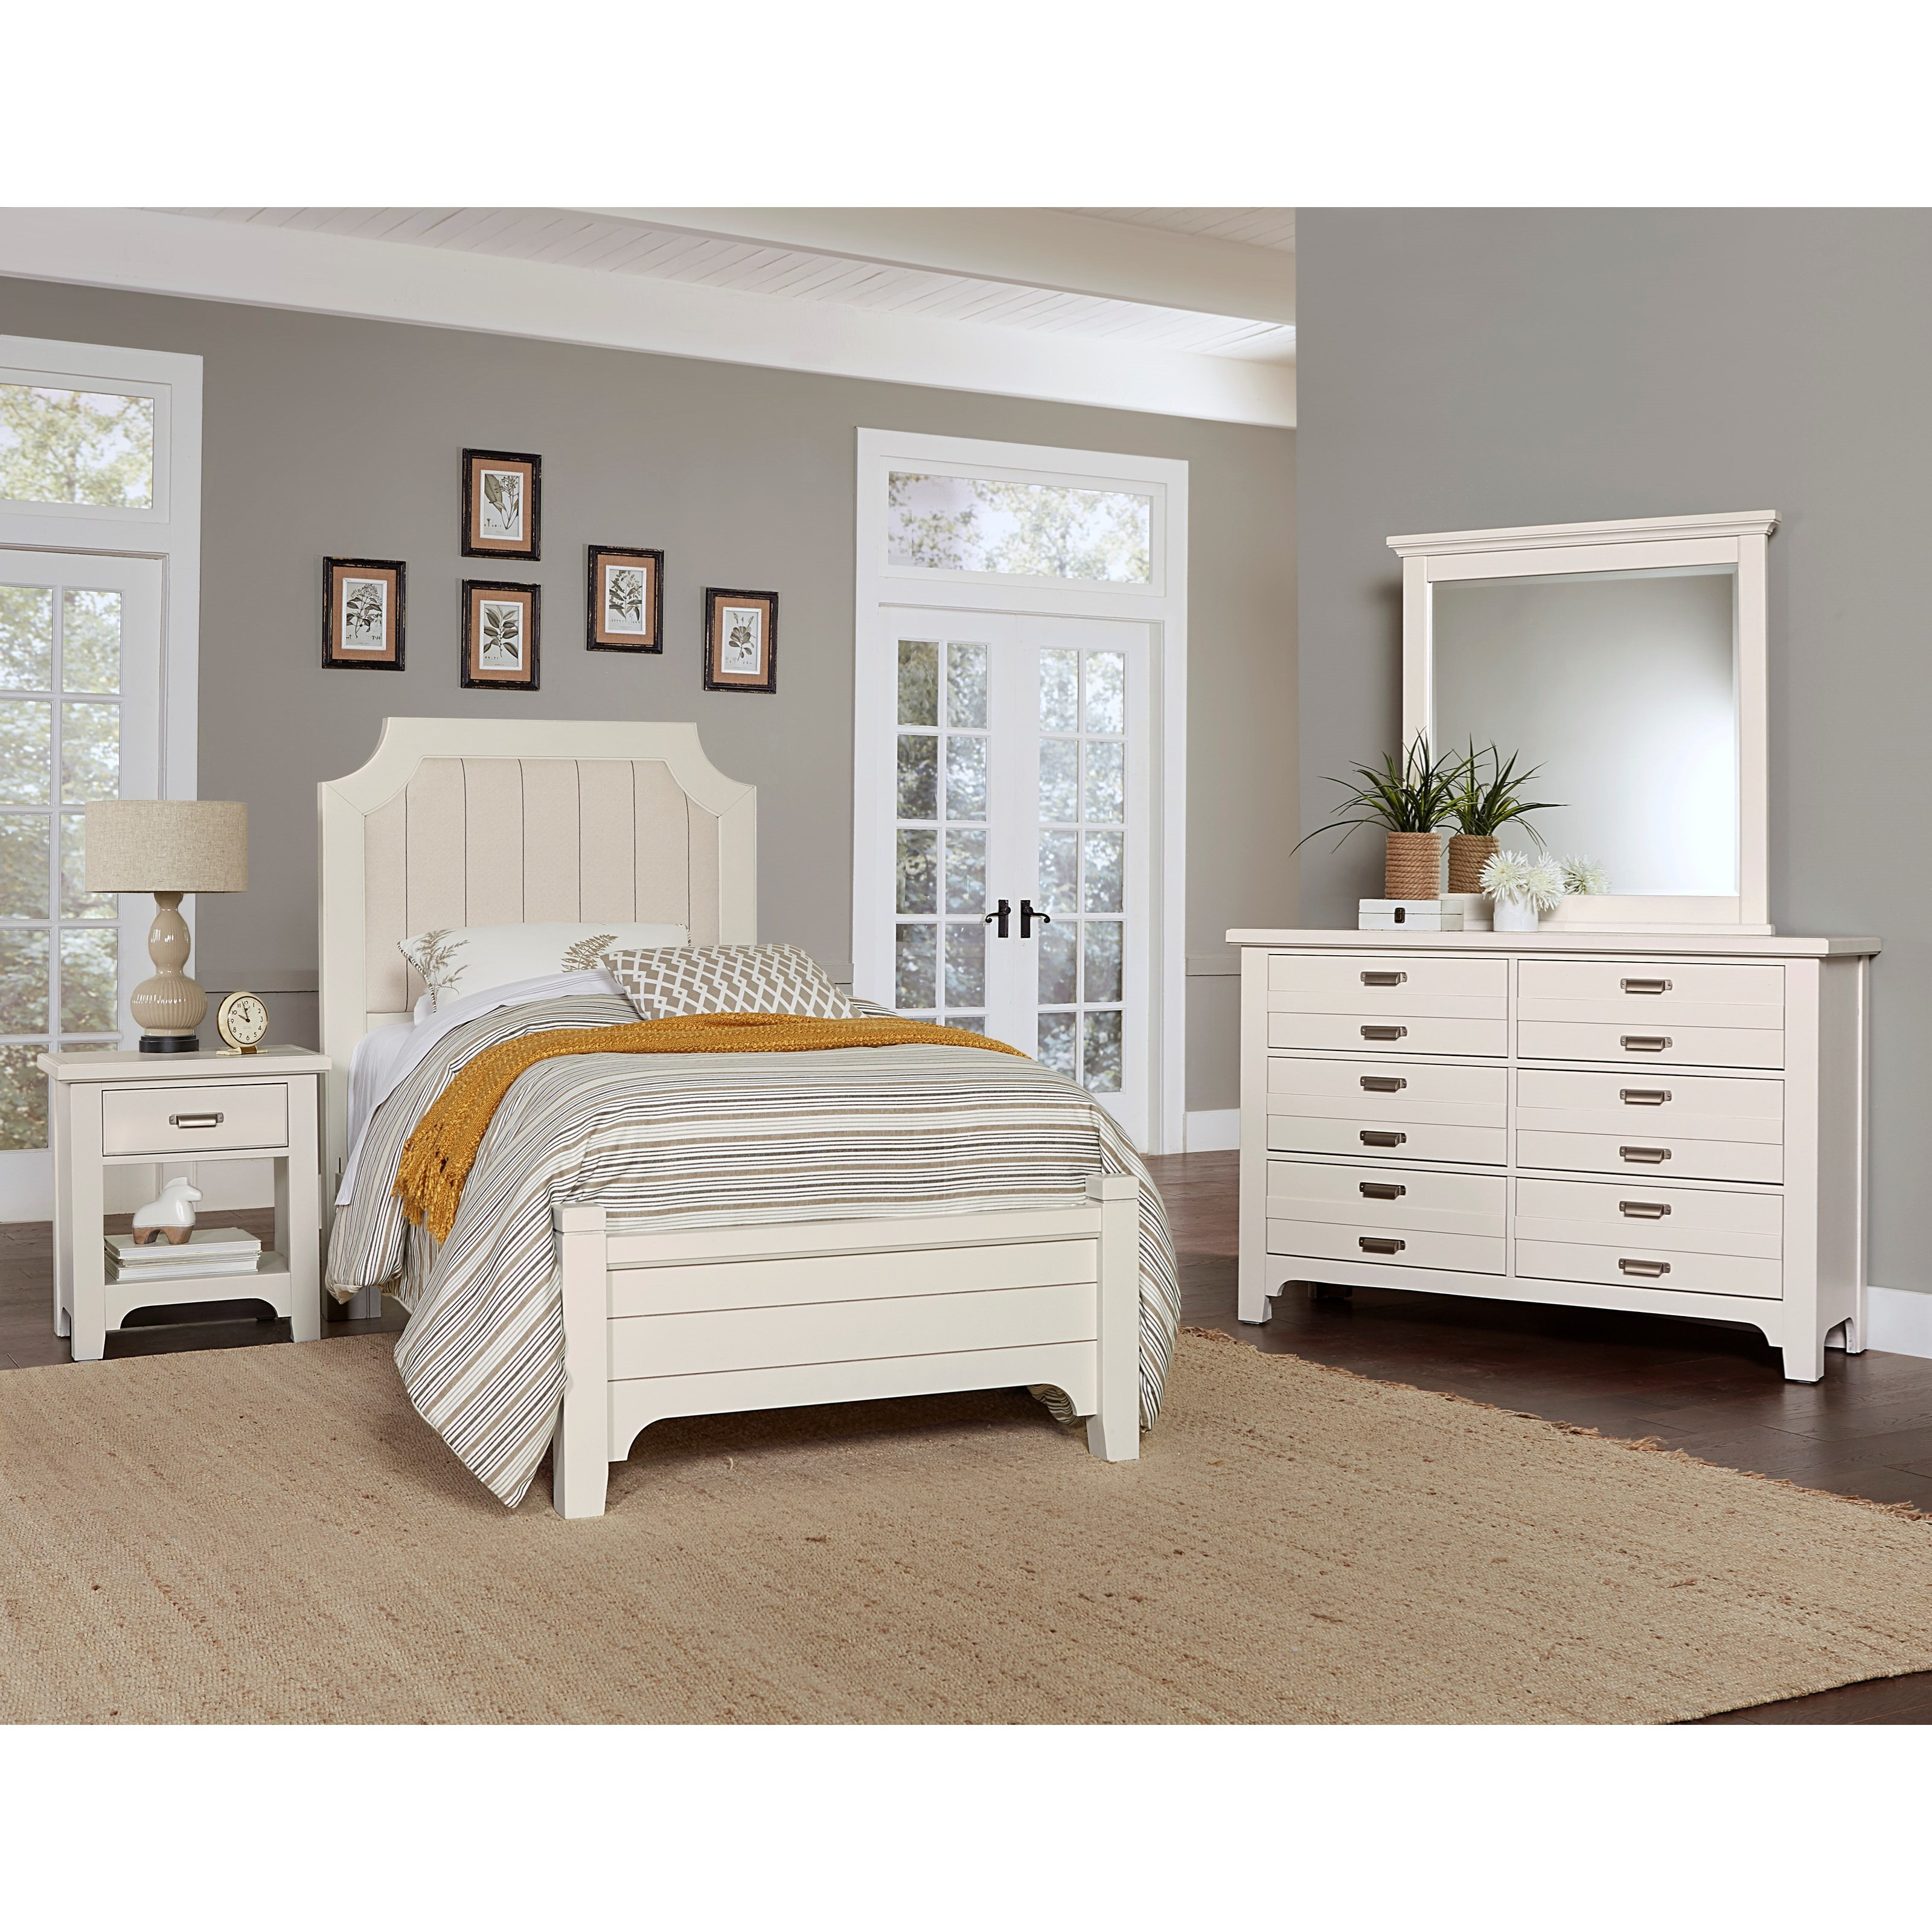 Bungalow Full Bedroom Group by Laurel Mercantile Co. at Johnny Janosik